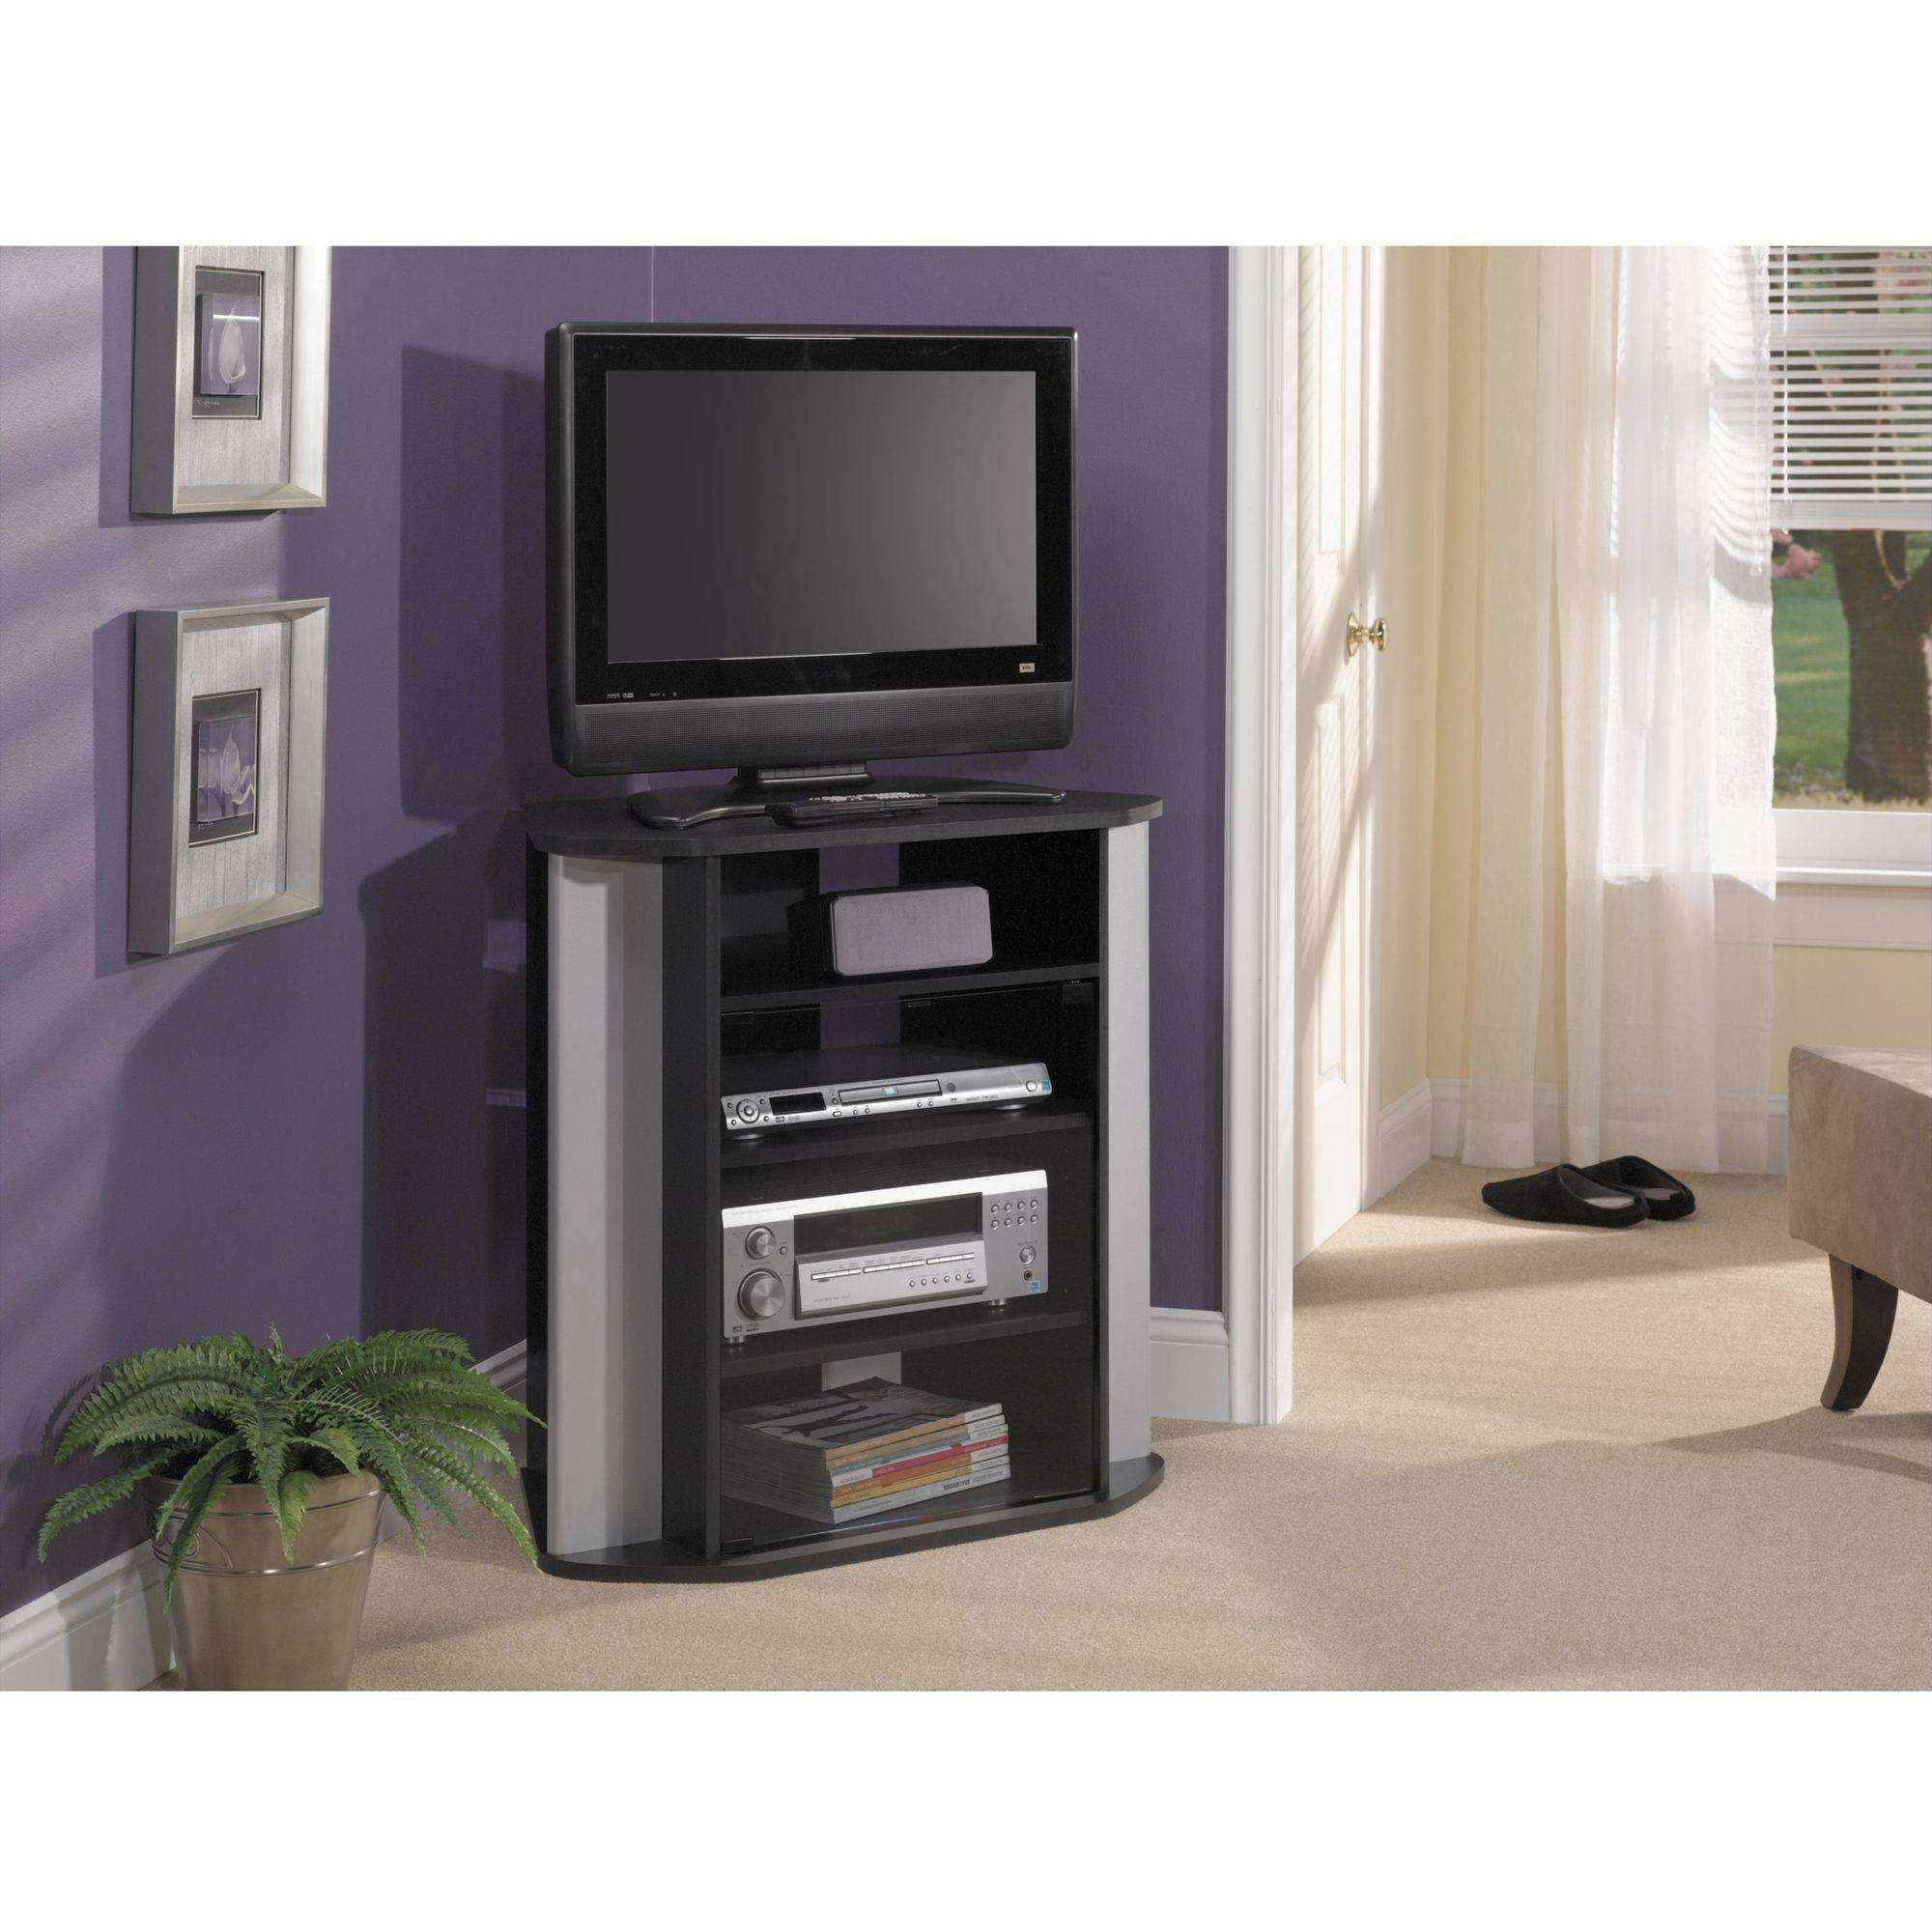 Best Corner Tv Stands For 50 Inch Tv 57 On Home Improvement Ideas Inside 50 Inch Corner Tv Cabinets (View 17 of 20)